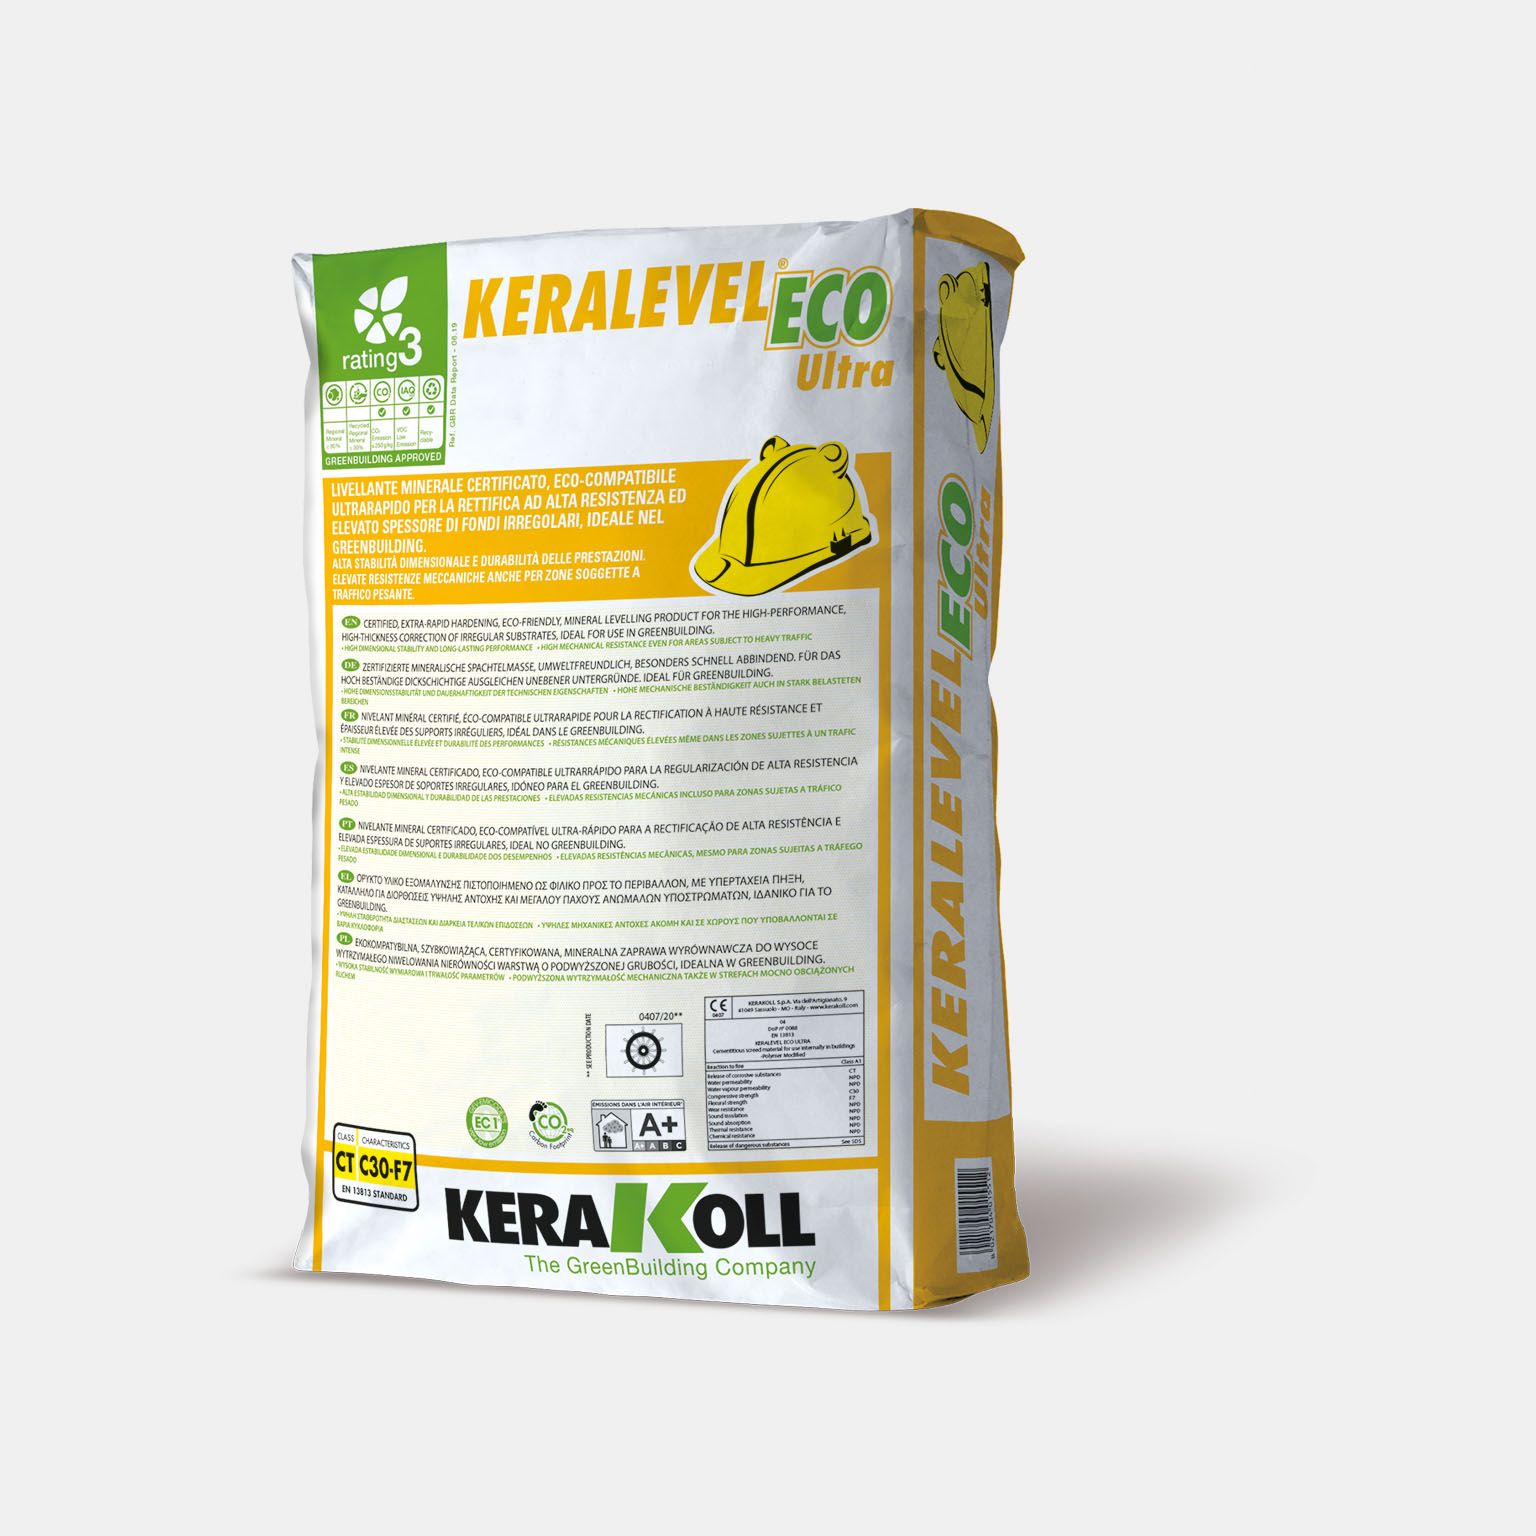 Keralevel Eco Ultra - immagine pack